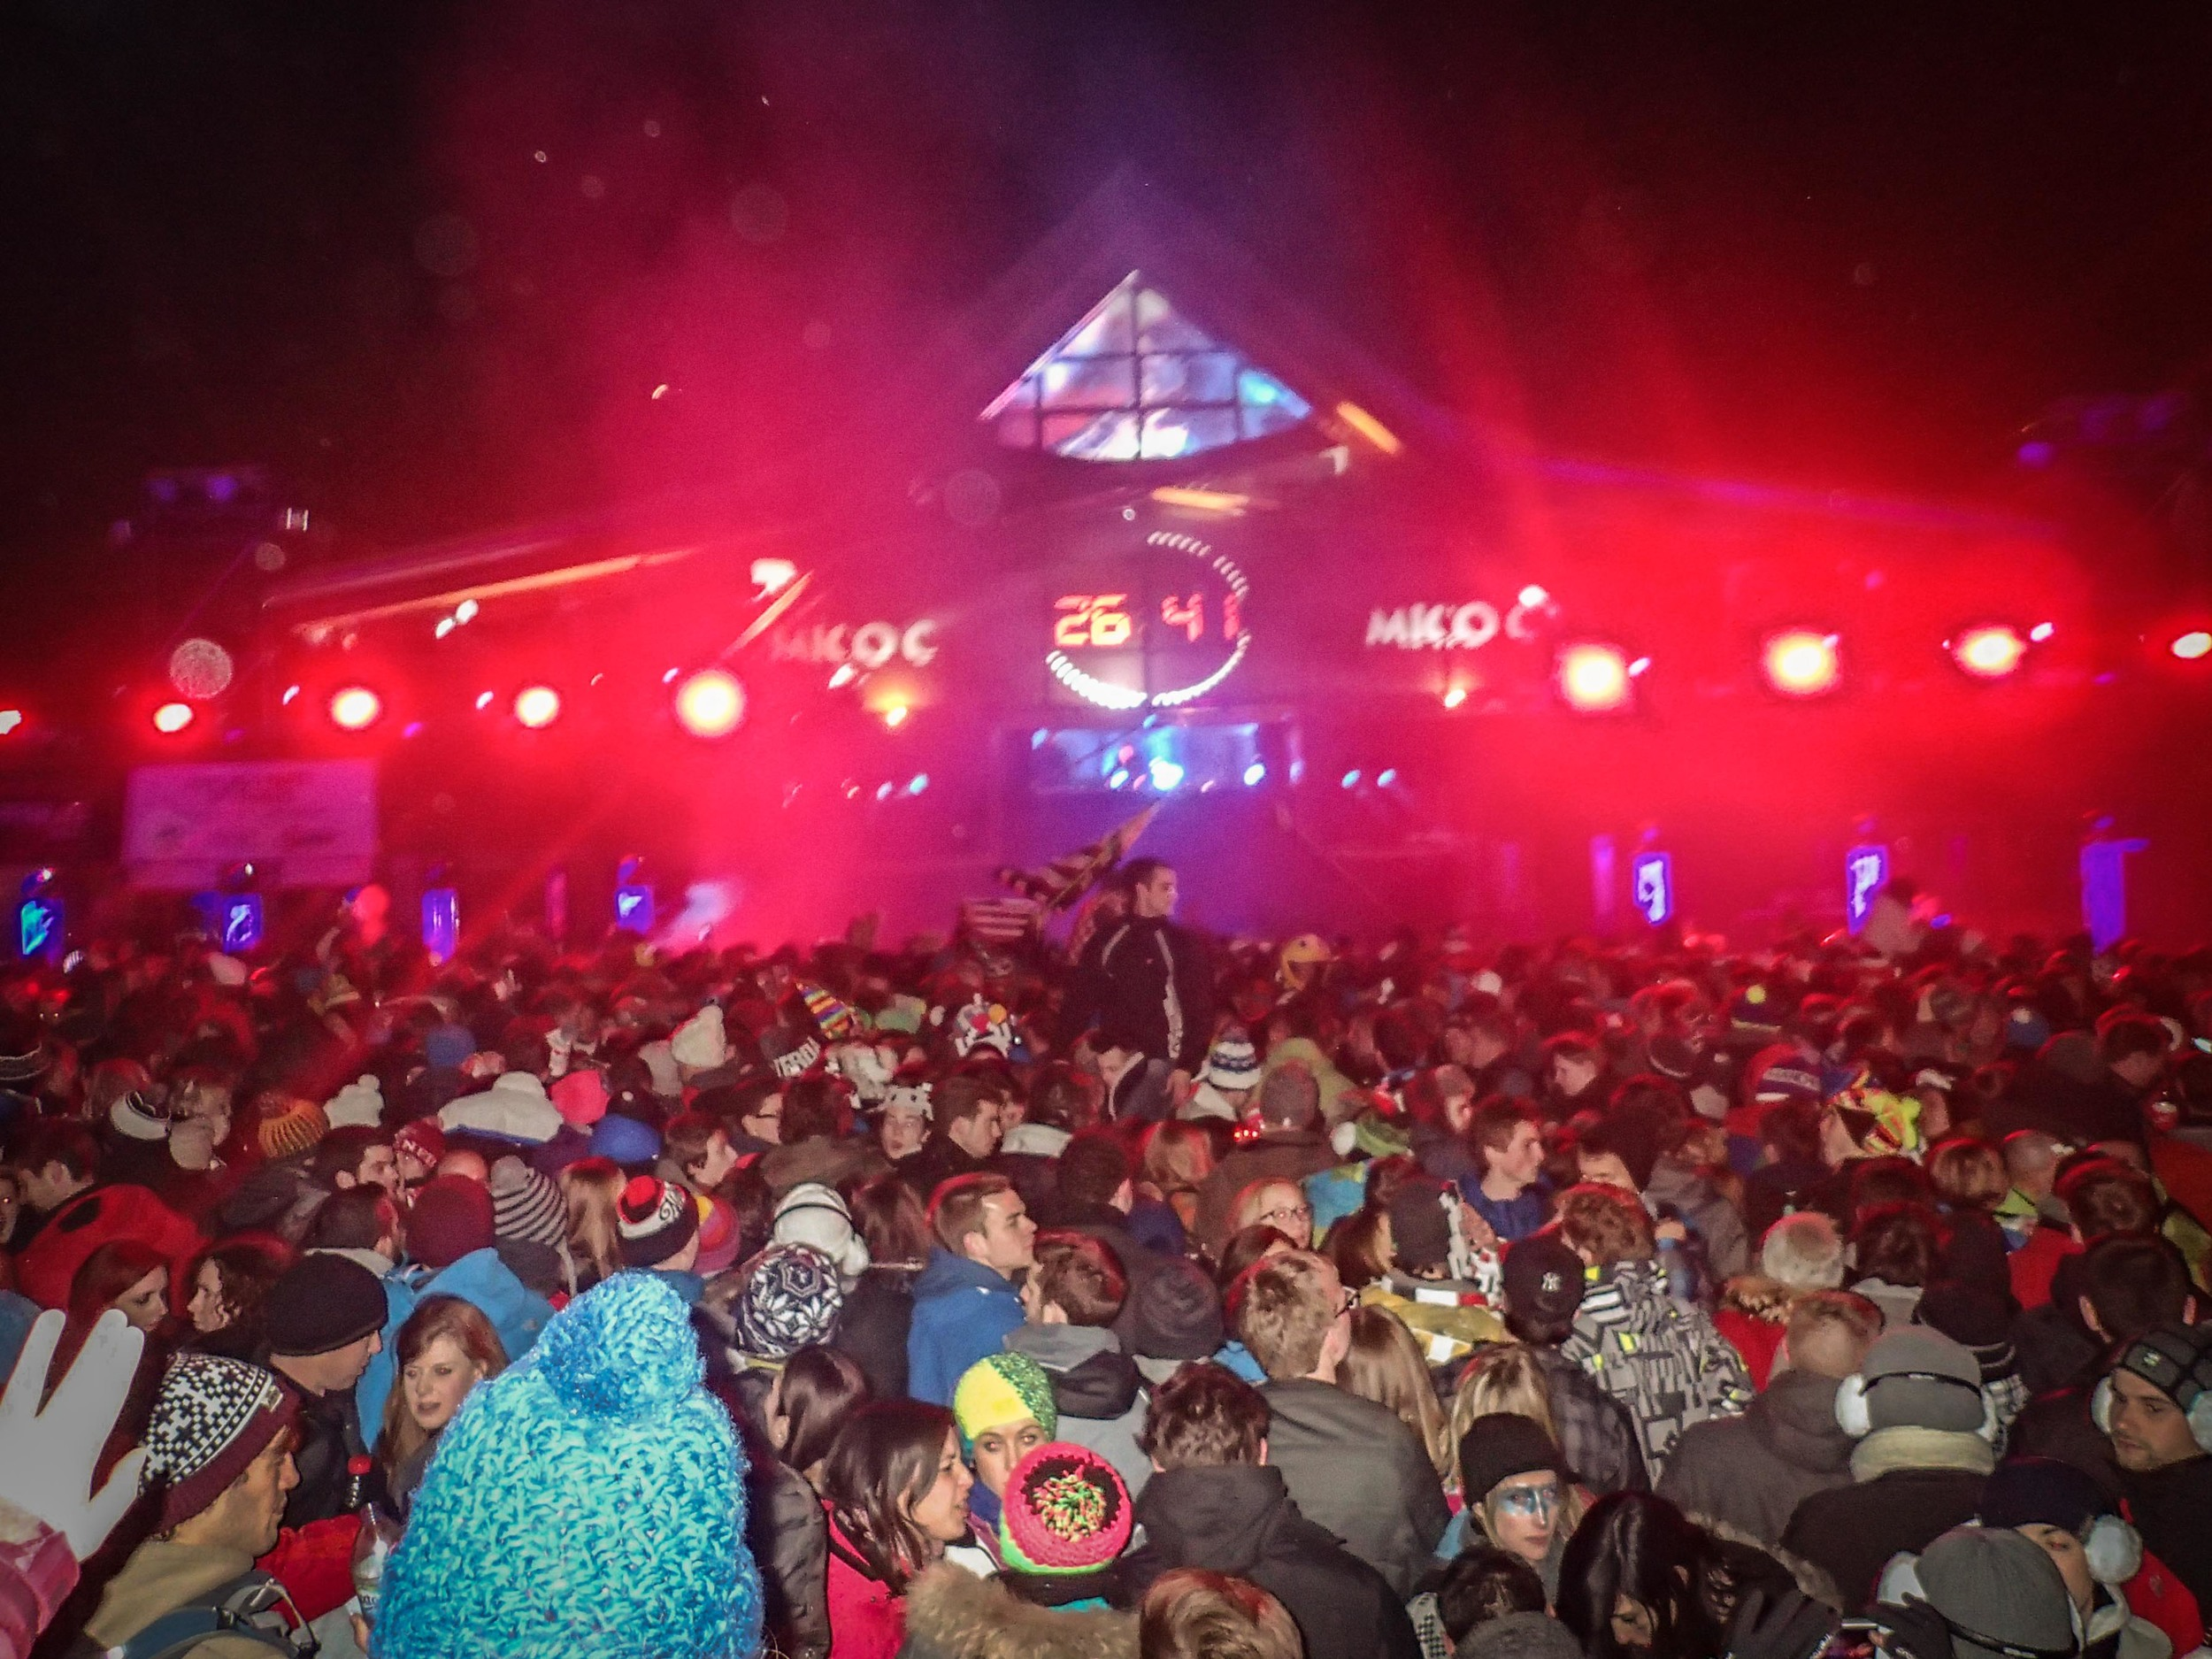 New Years Eve in Tignes - the party is crazy!